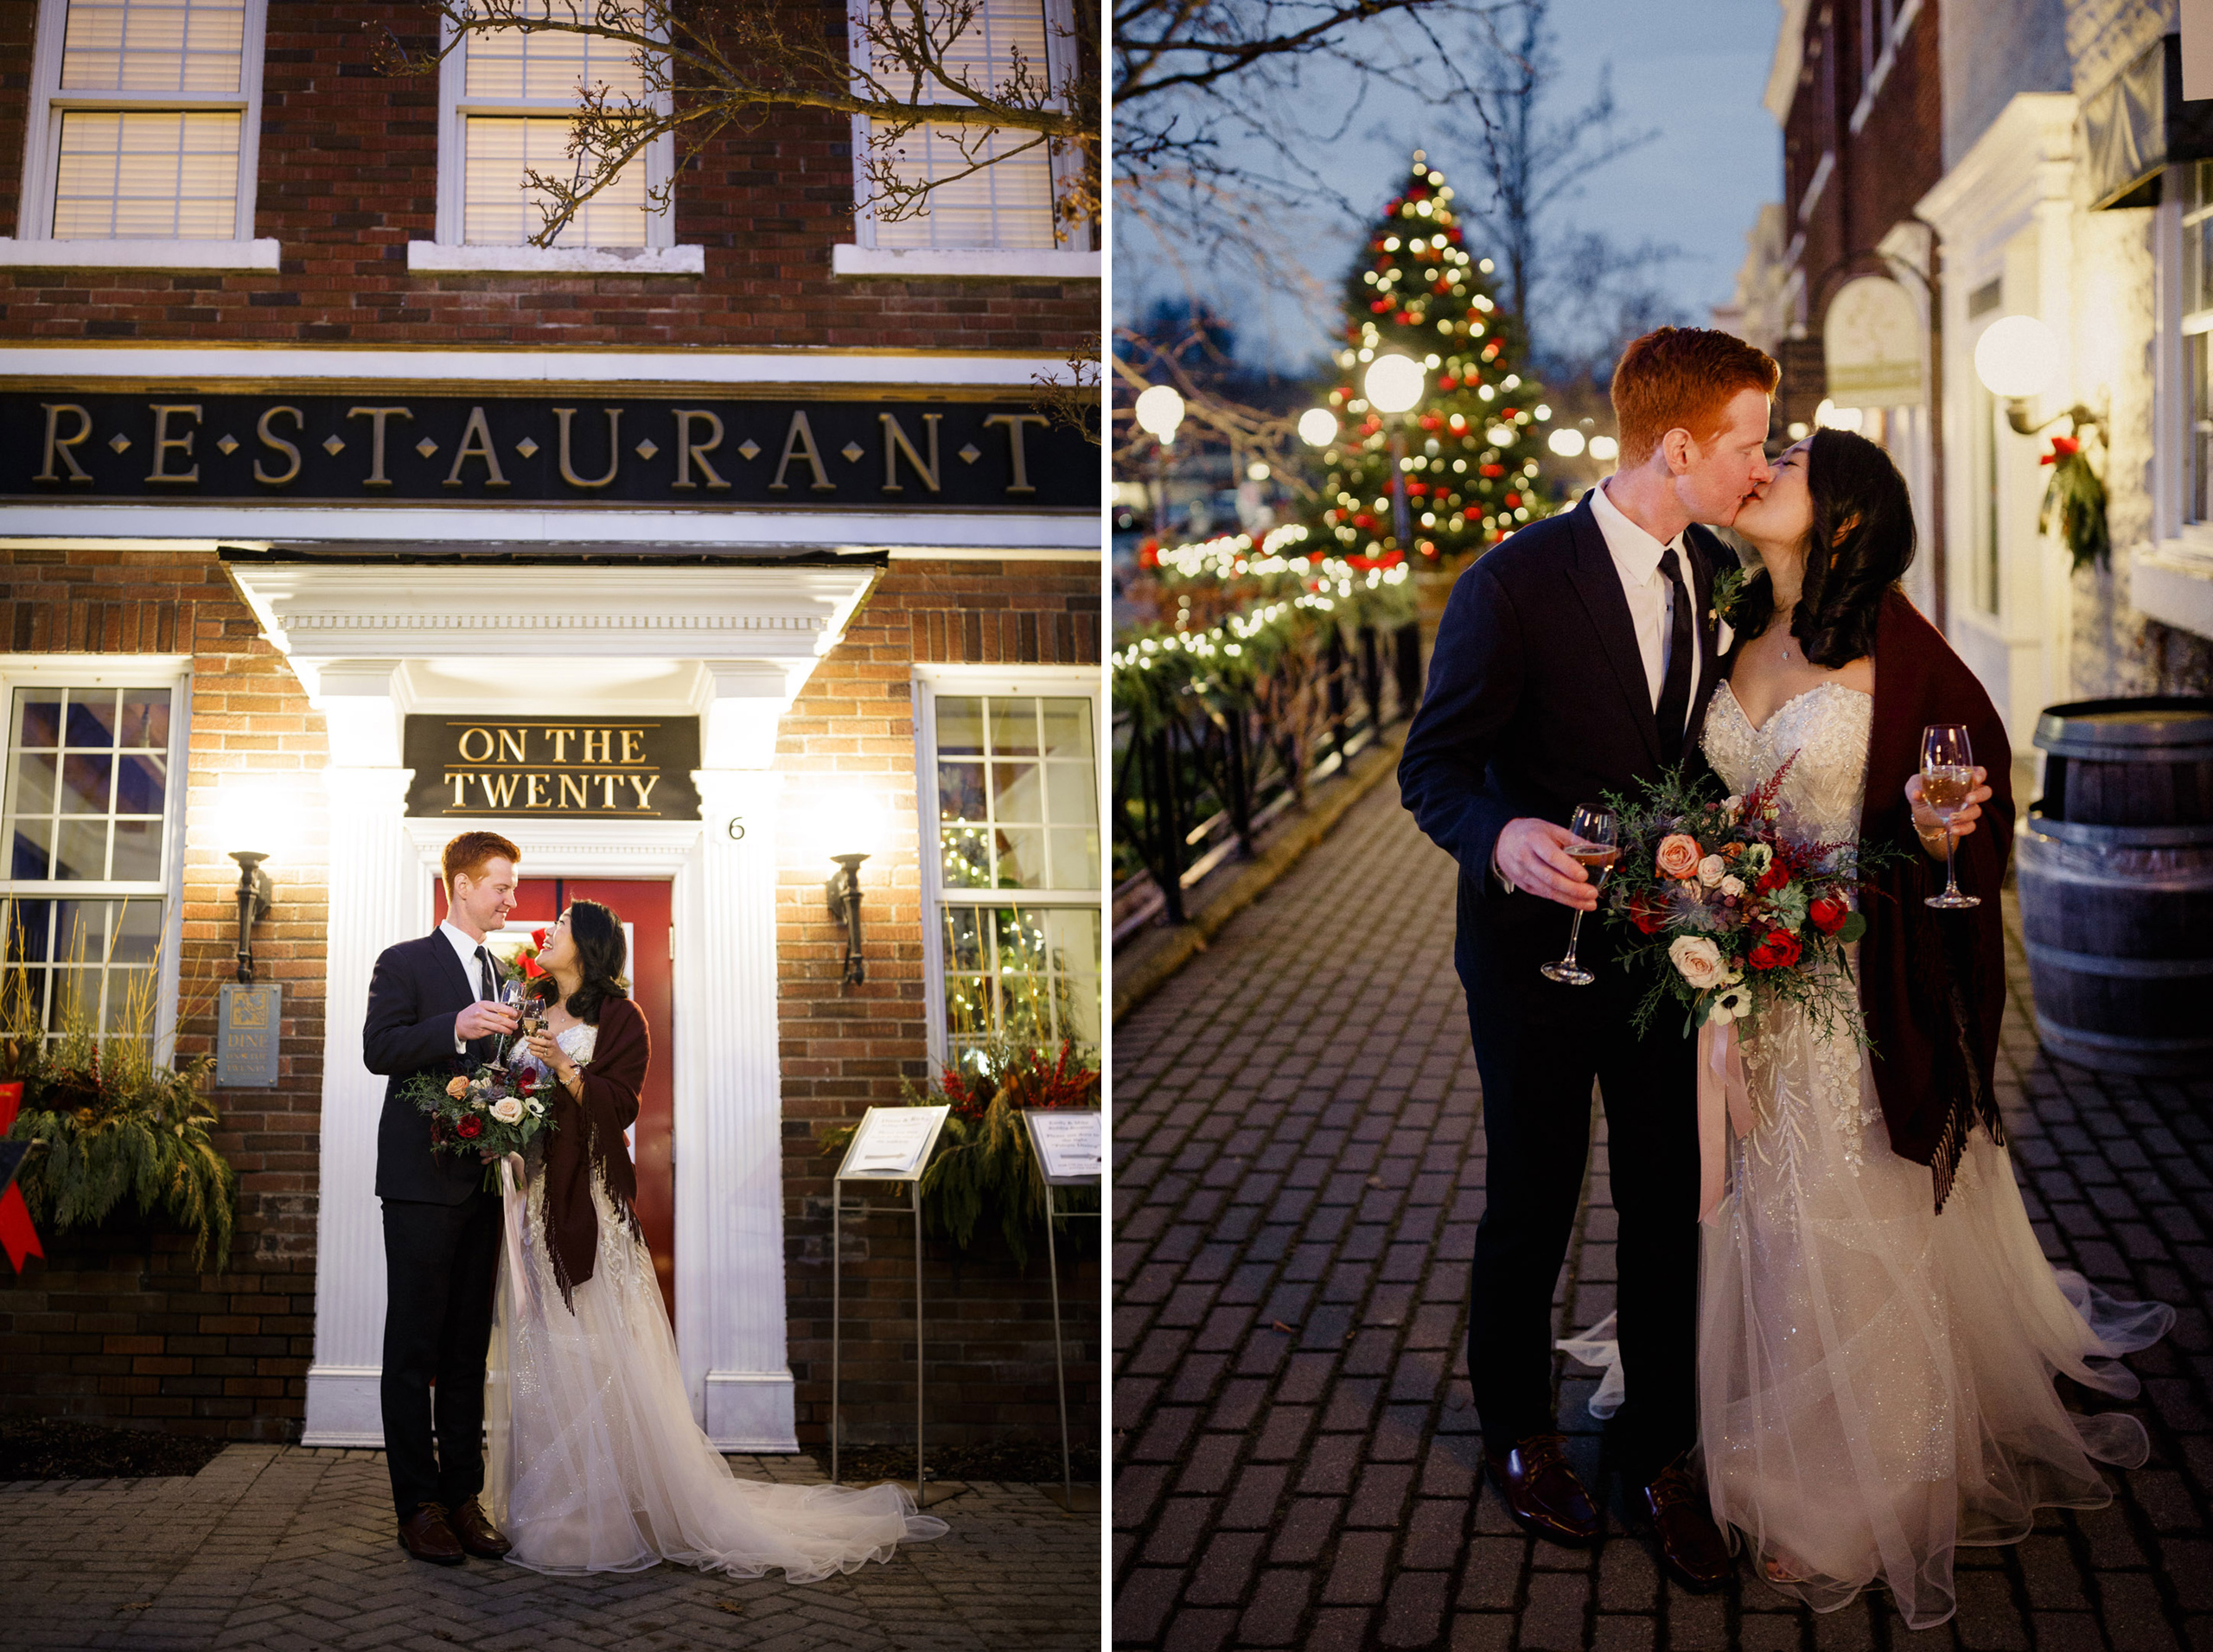 inn on the twenty jordan night wedding winter kiss romantic walk